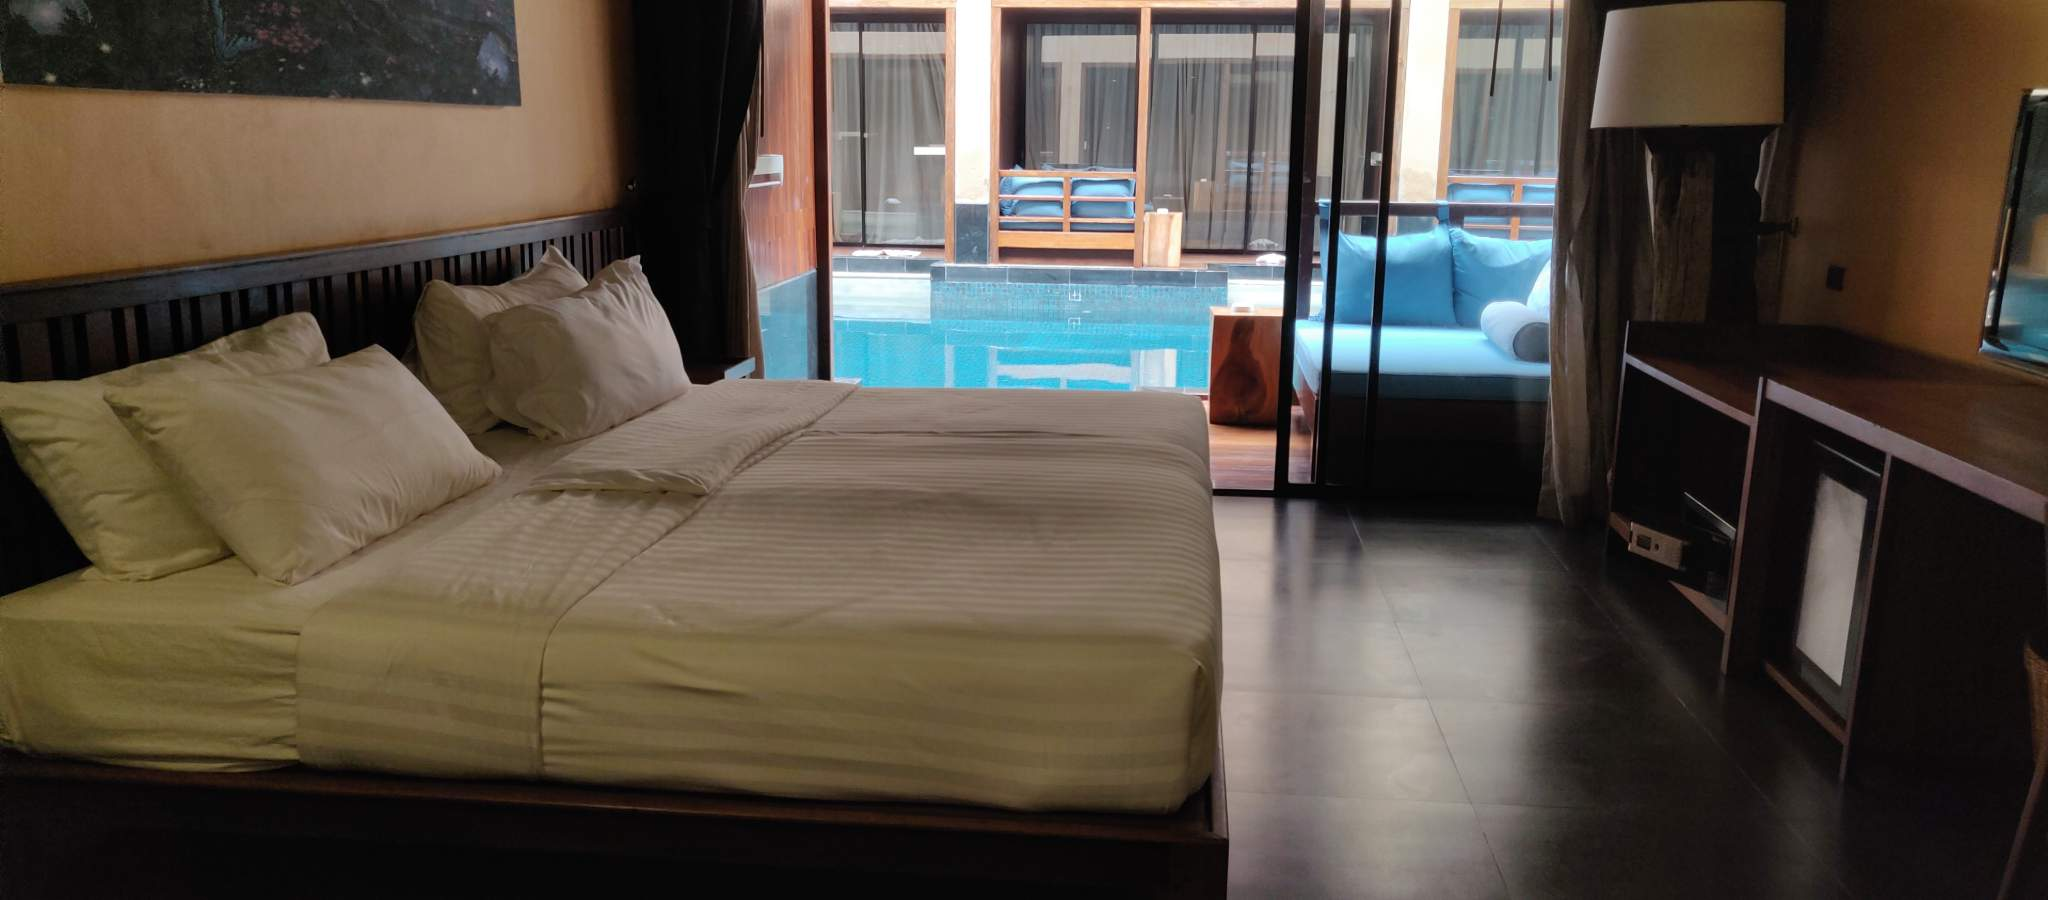 De Deluxe Pool Room van Avatar Railay in Krabi Railay Beach